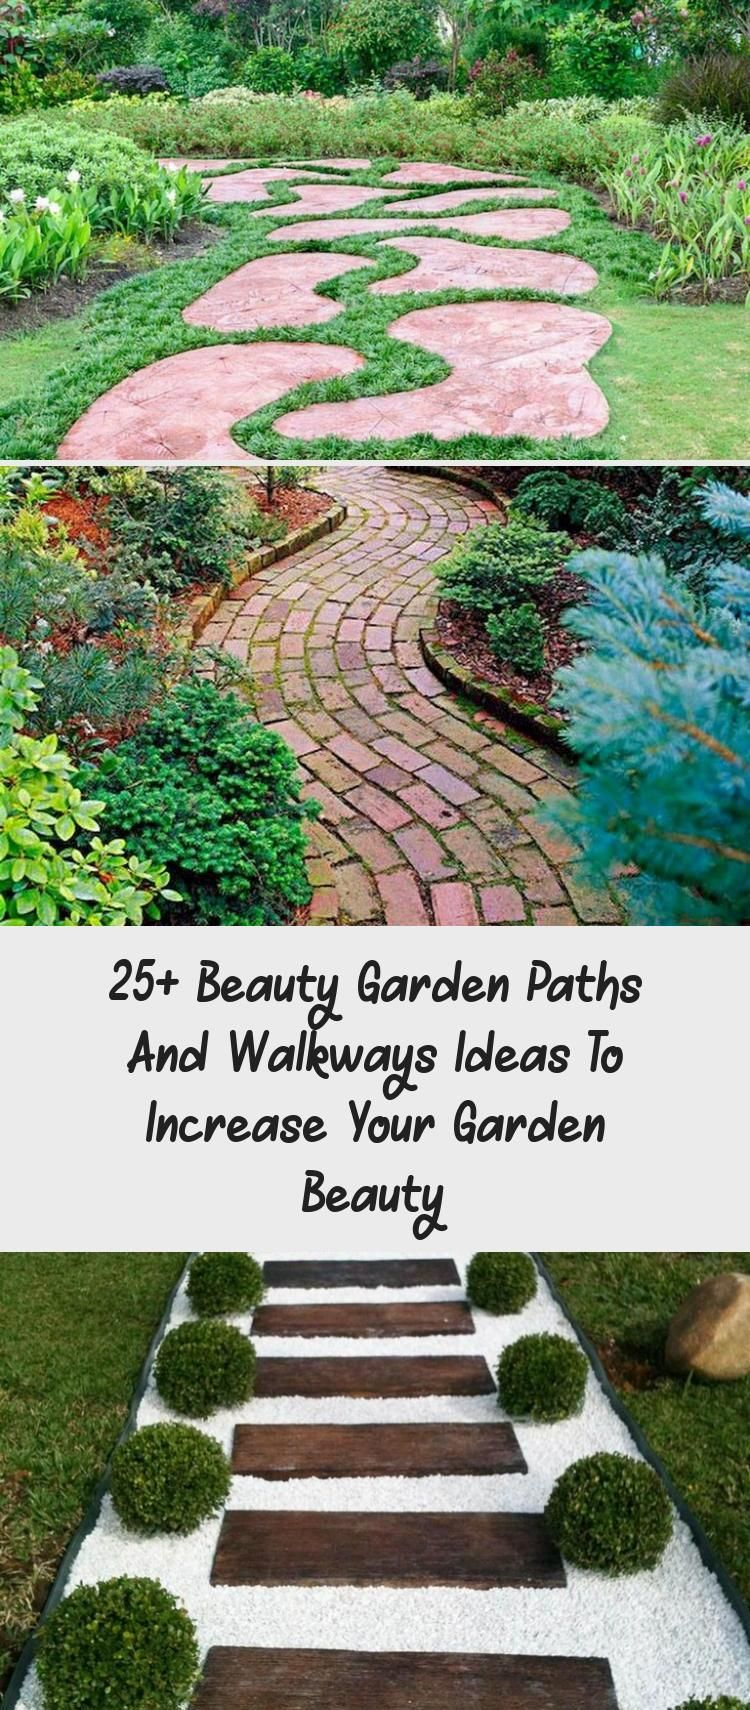 Photo of 25+ Beauty Garden Paths And Walkways Ideas To Increase Your Garden Beauty – Decor